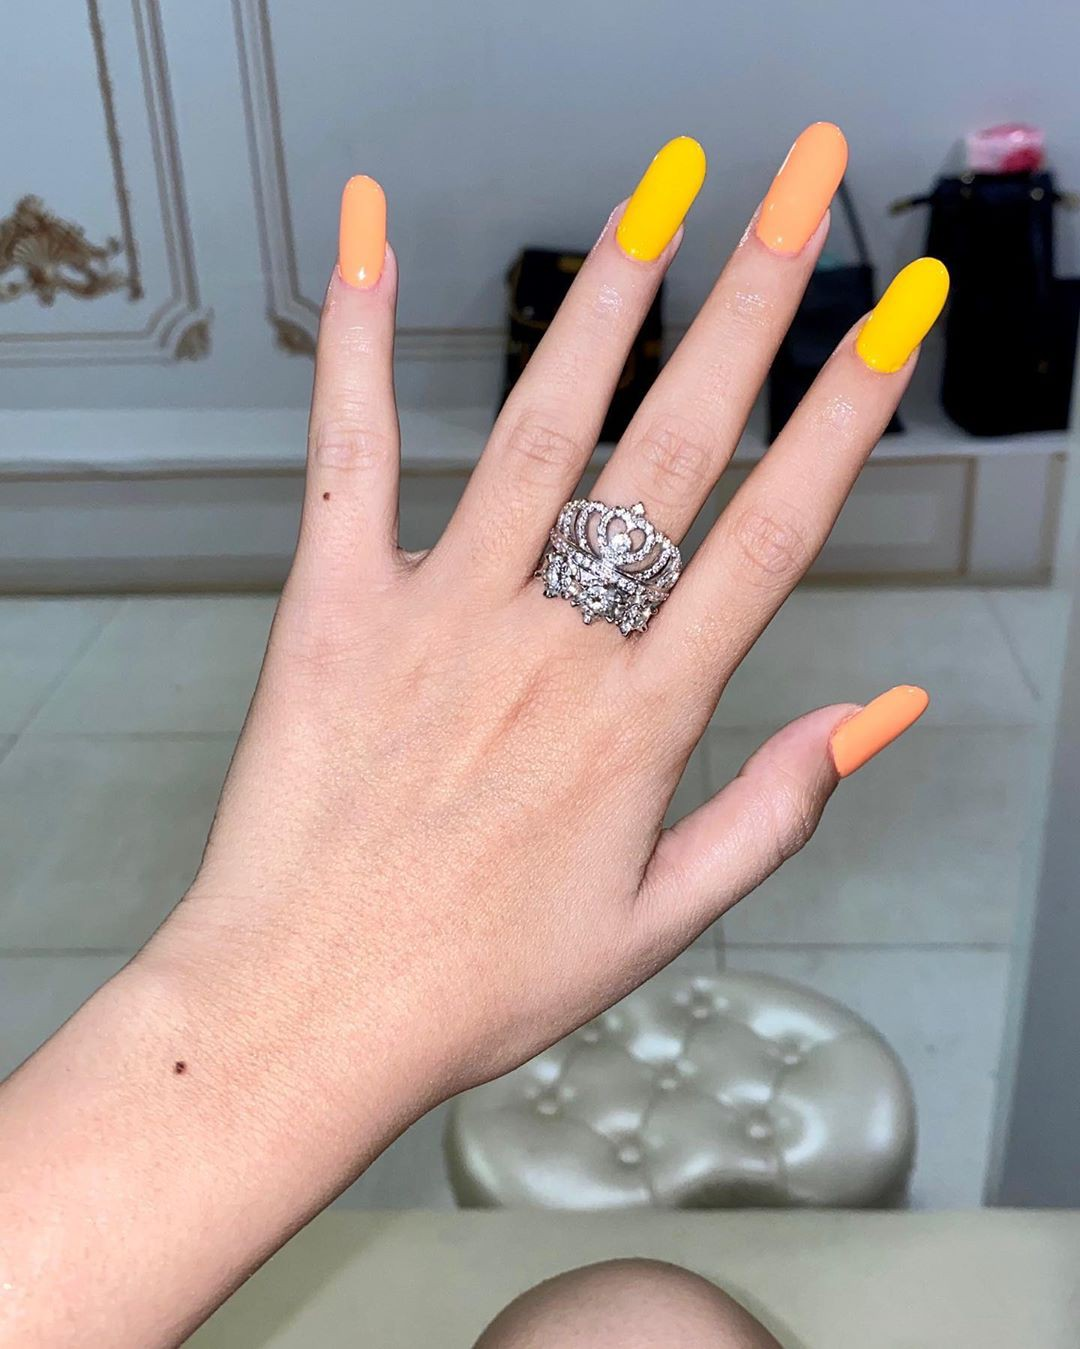 yellow colour ideas with fashion accessory, Nail Art, jewellery, ring